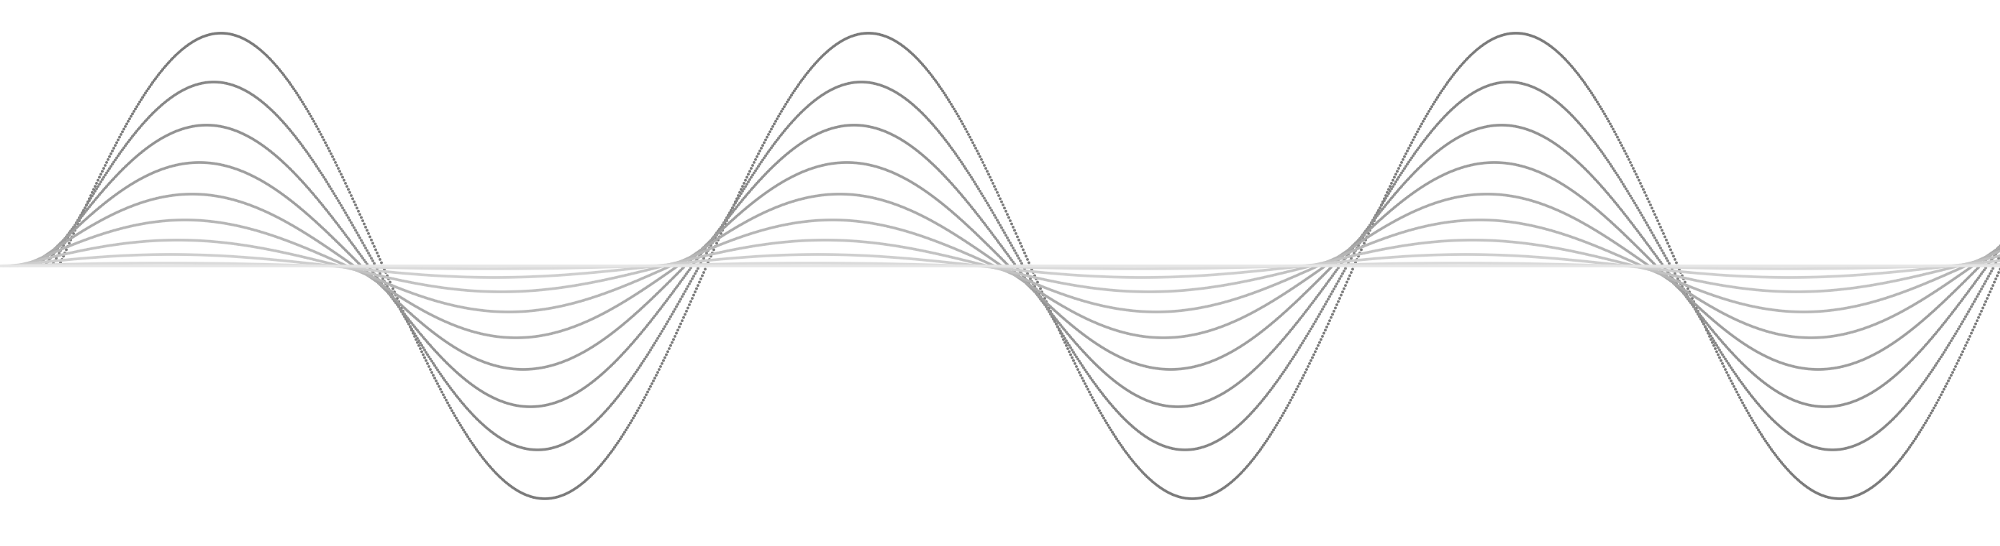 Lines with different amplitude rates.